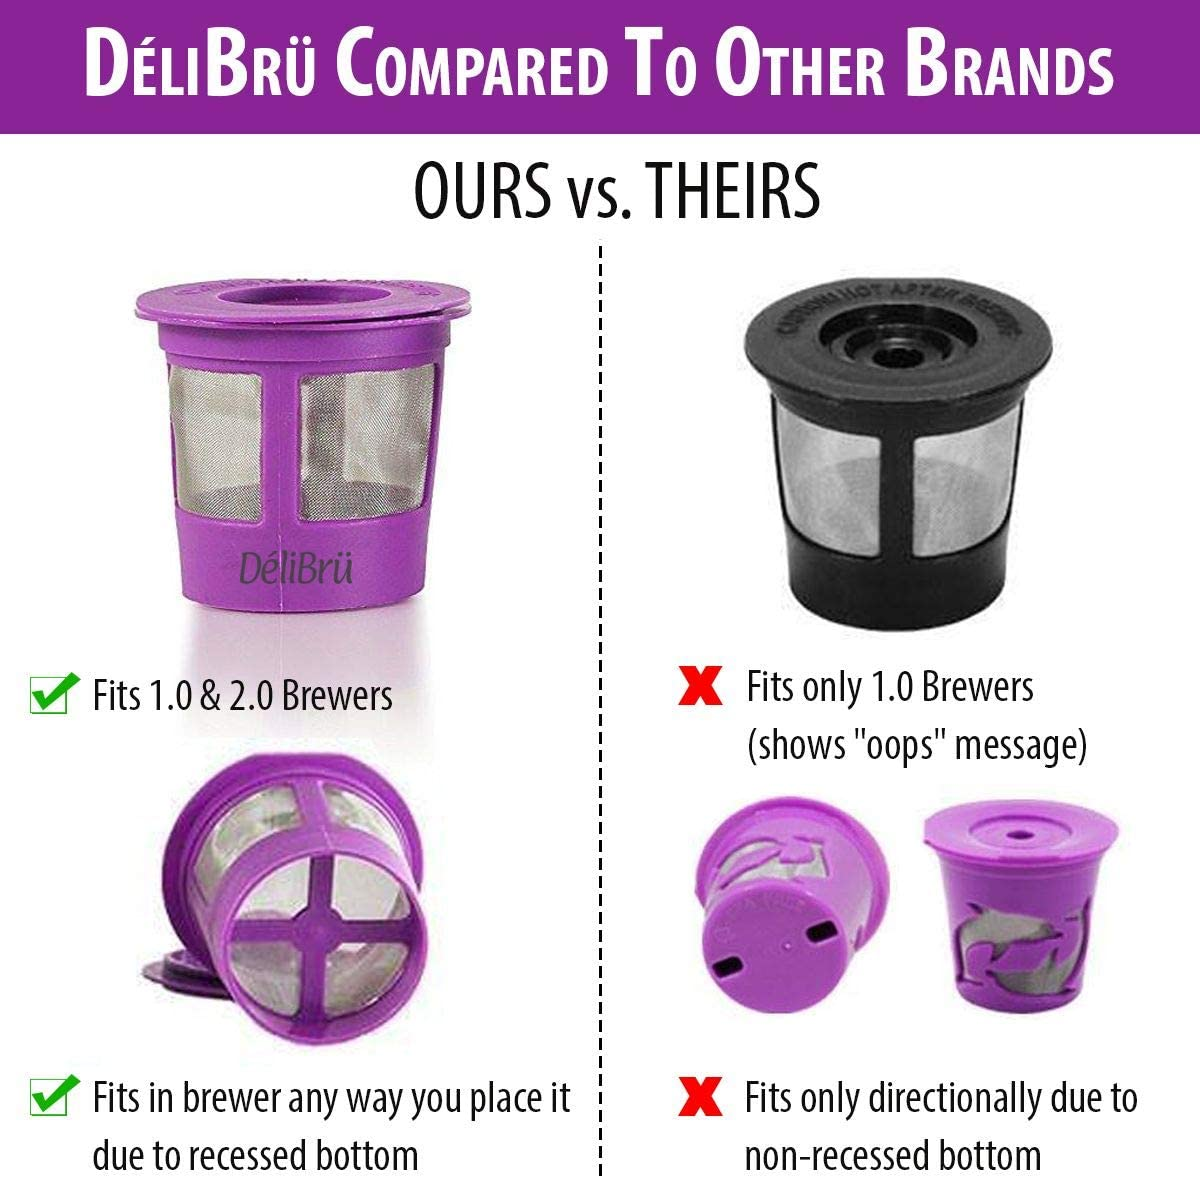 Reusable K Cups for Keurig 2.0 & 1.0 4PACK Coffee Makers. Universal Refillable KCups, Keurig filter, Reusable kcup, k cup k-cups reusable filter by Delibru 71PvAzwSC2L